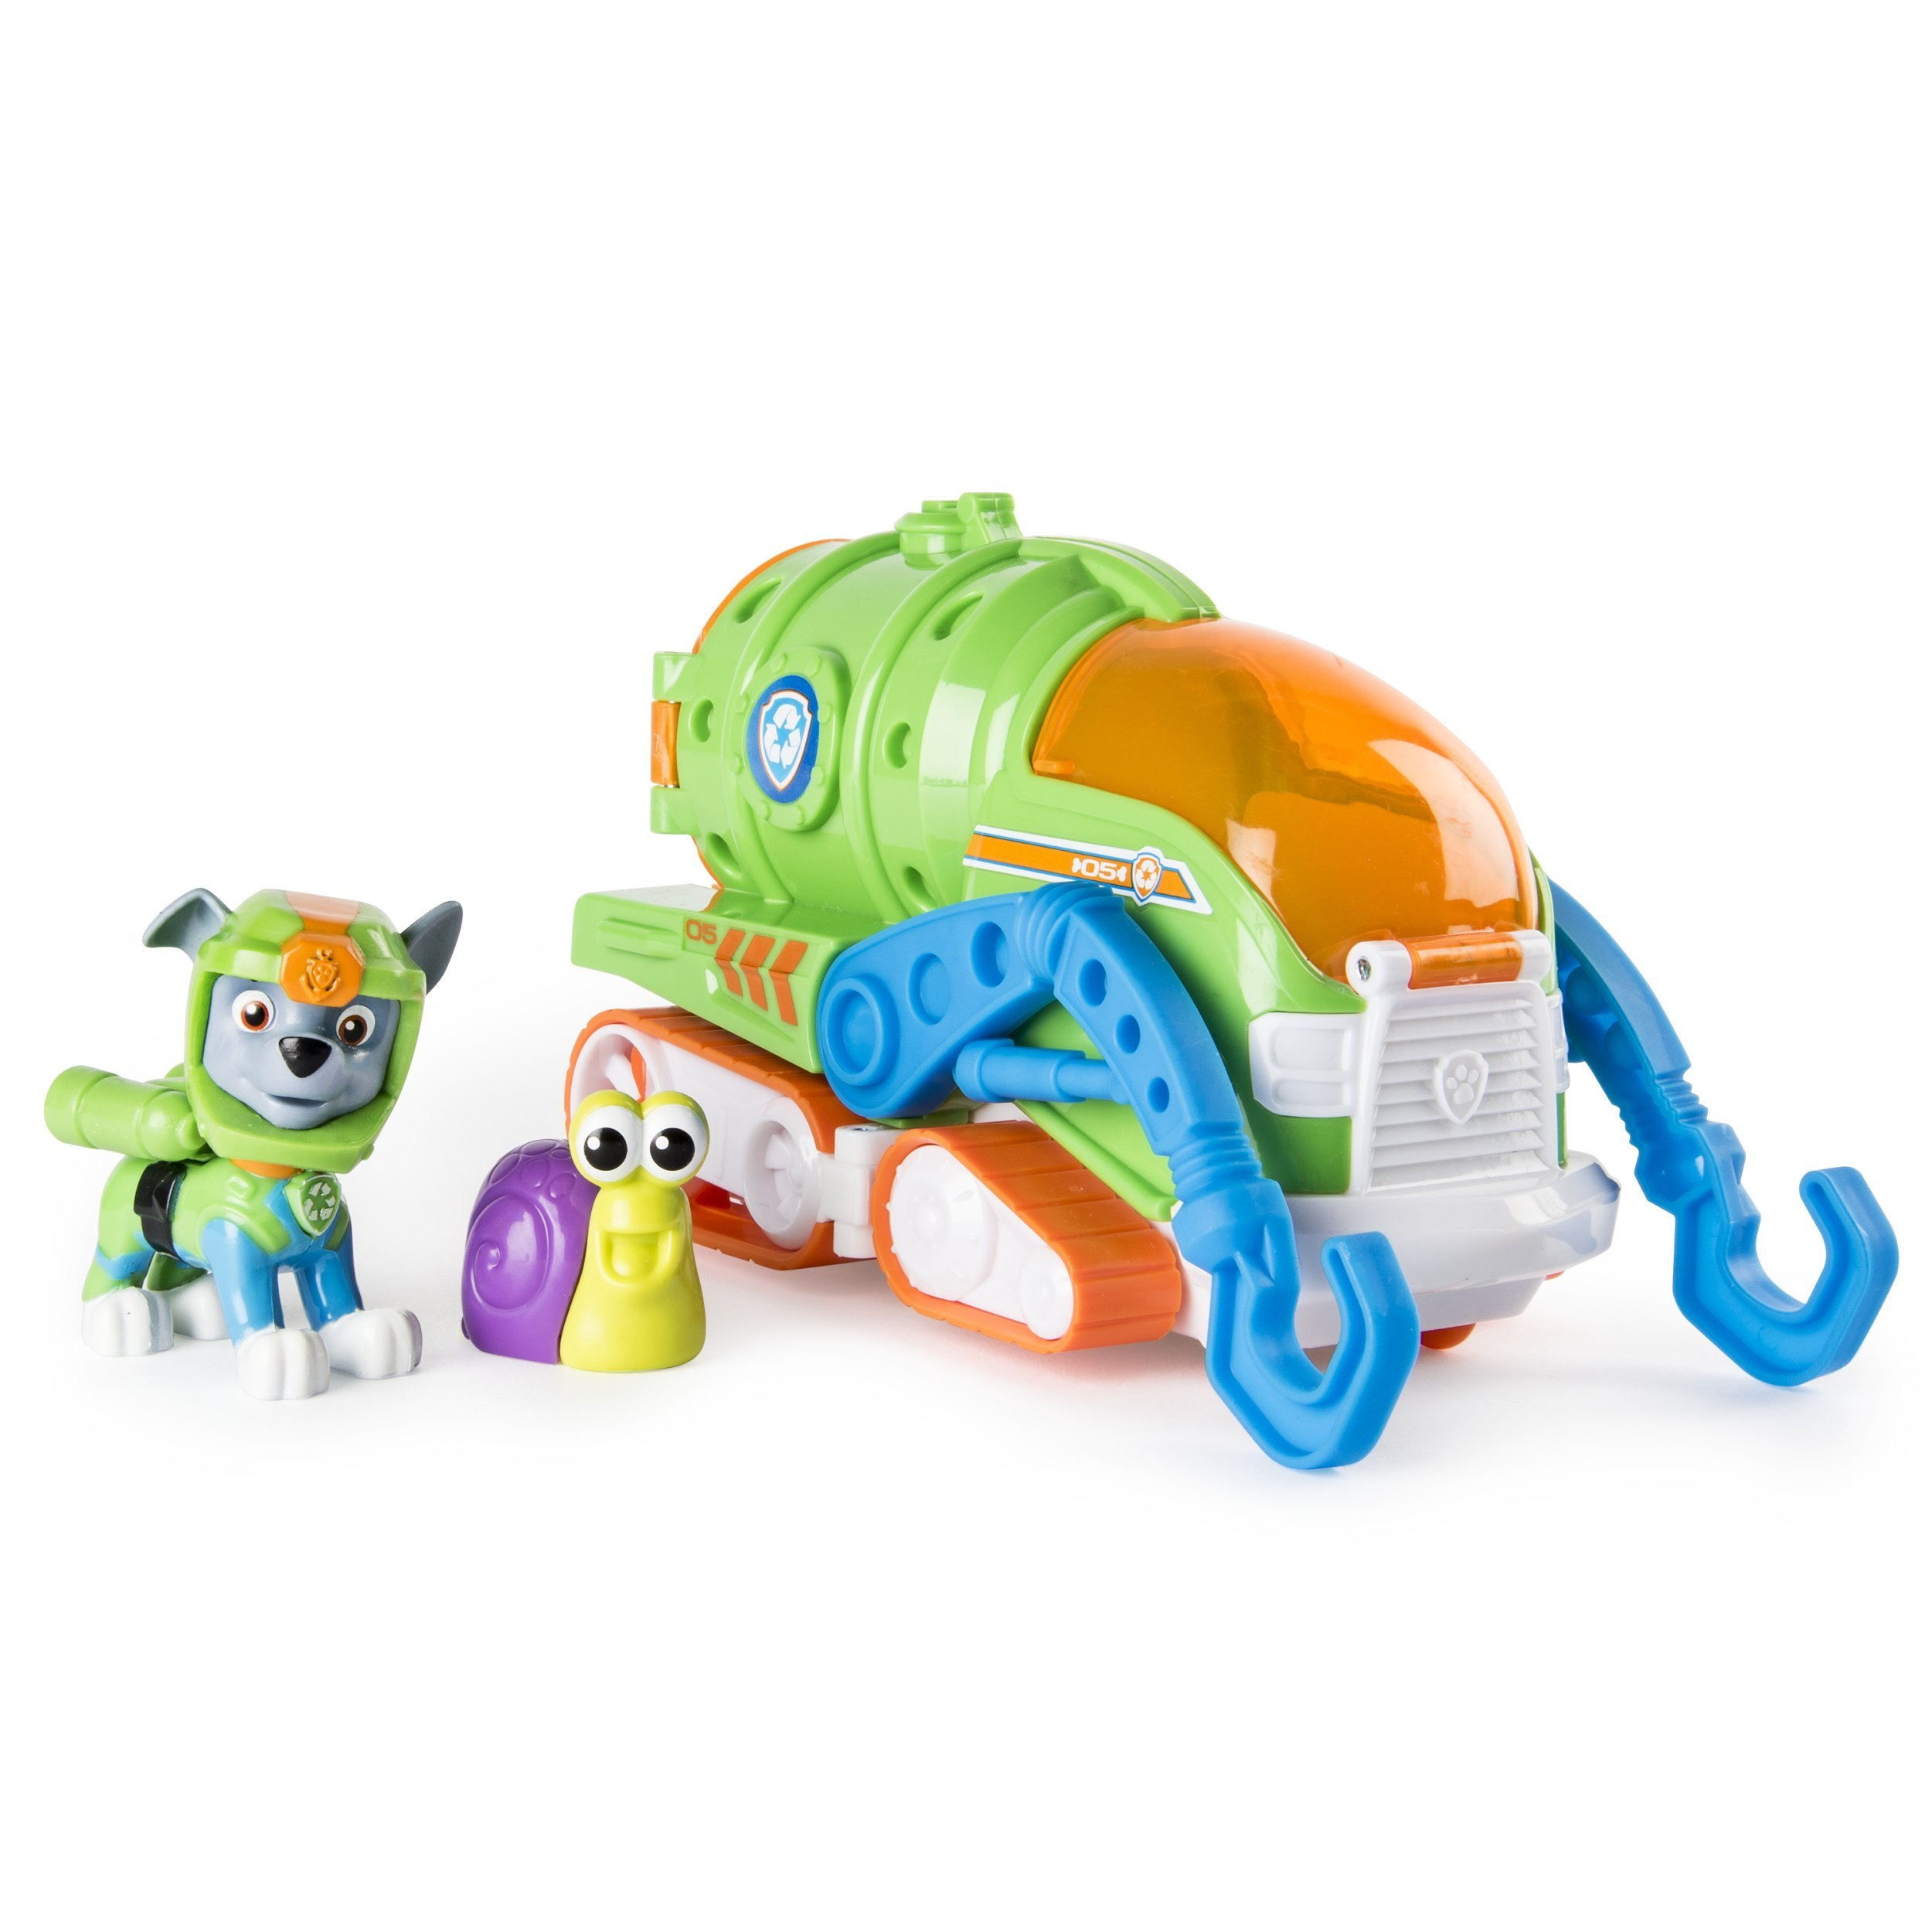 Sea Patrol - Rocky's Transforming Vehicle and Snail Sea Friend